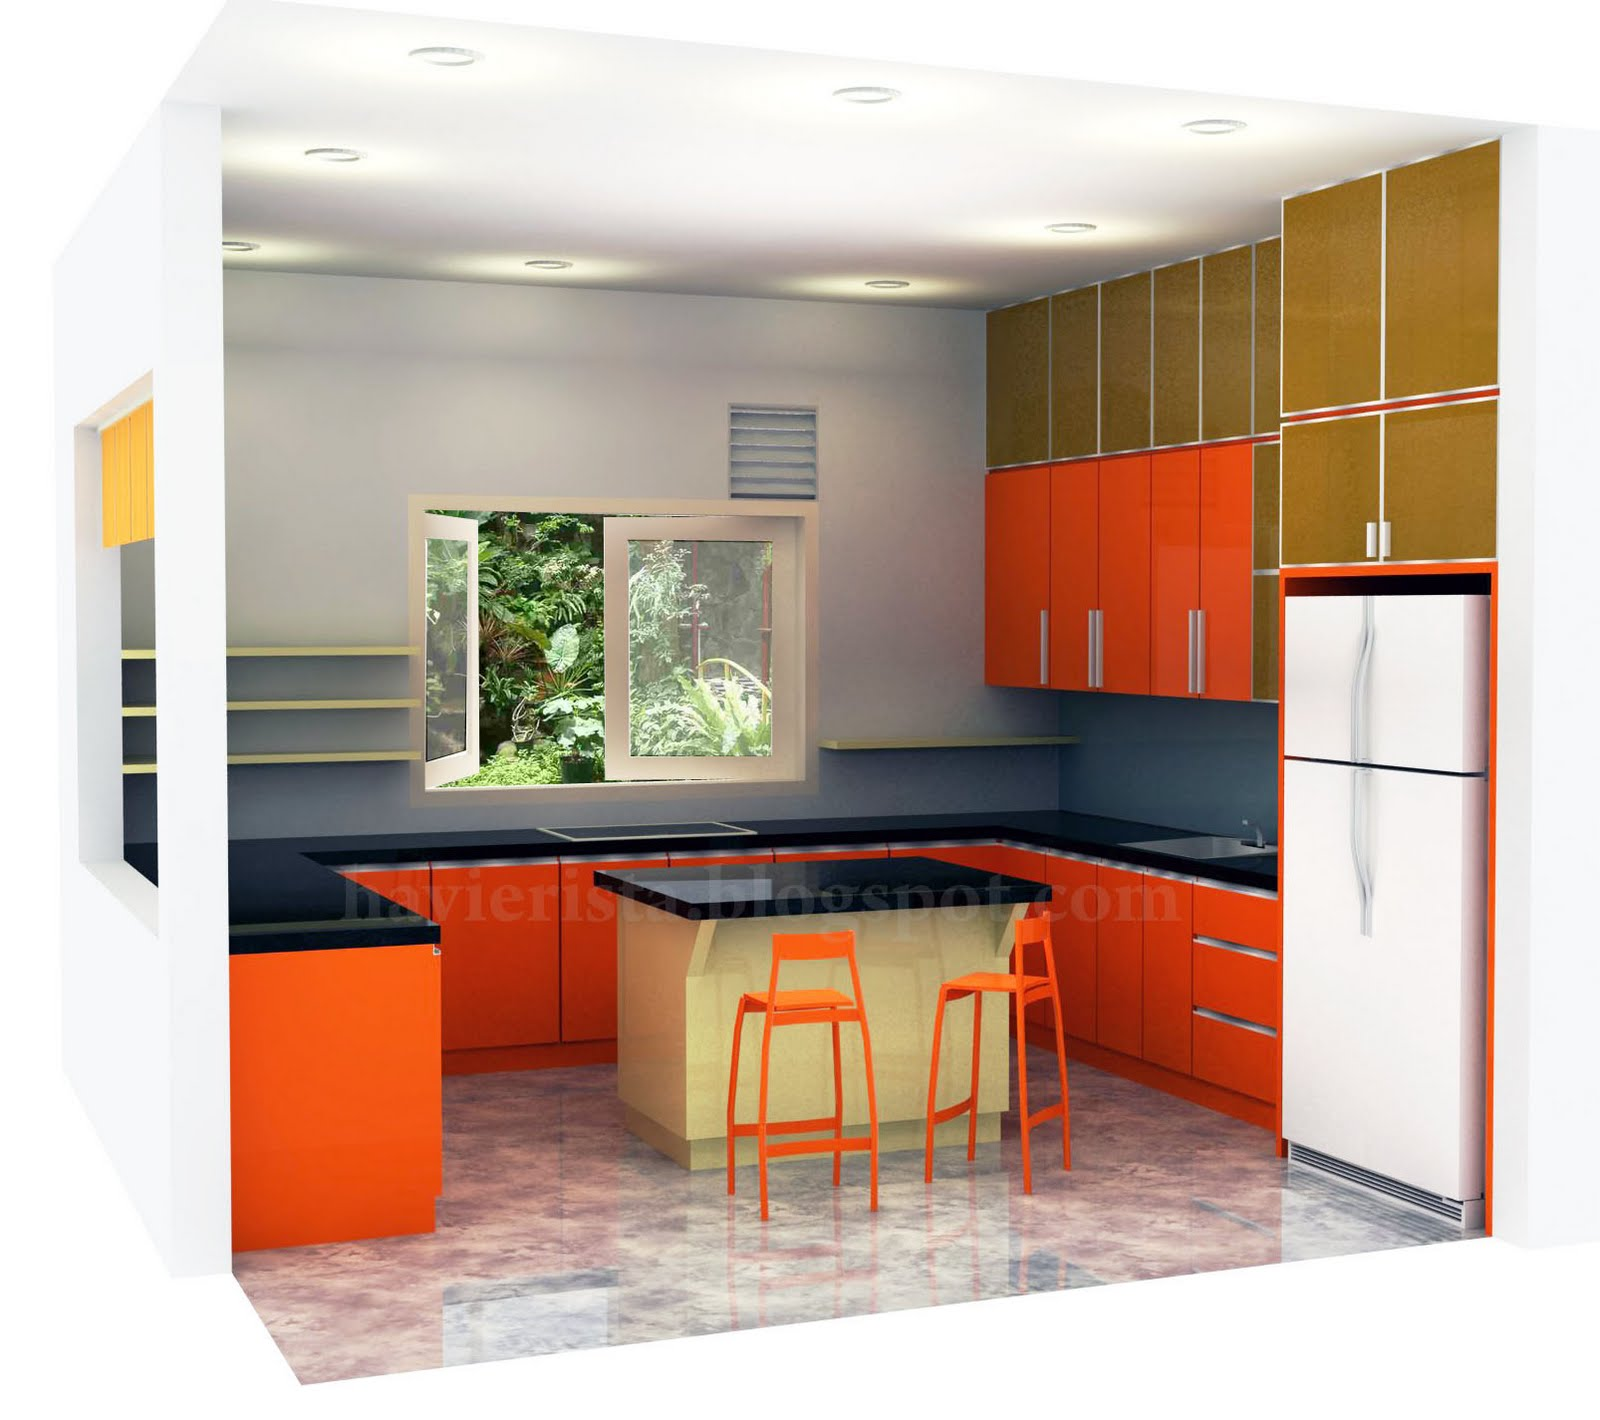 BLUE STRIPES: Cheerful Kitchen With Orange